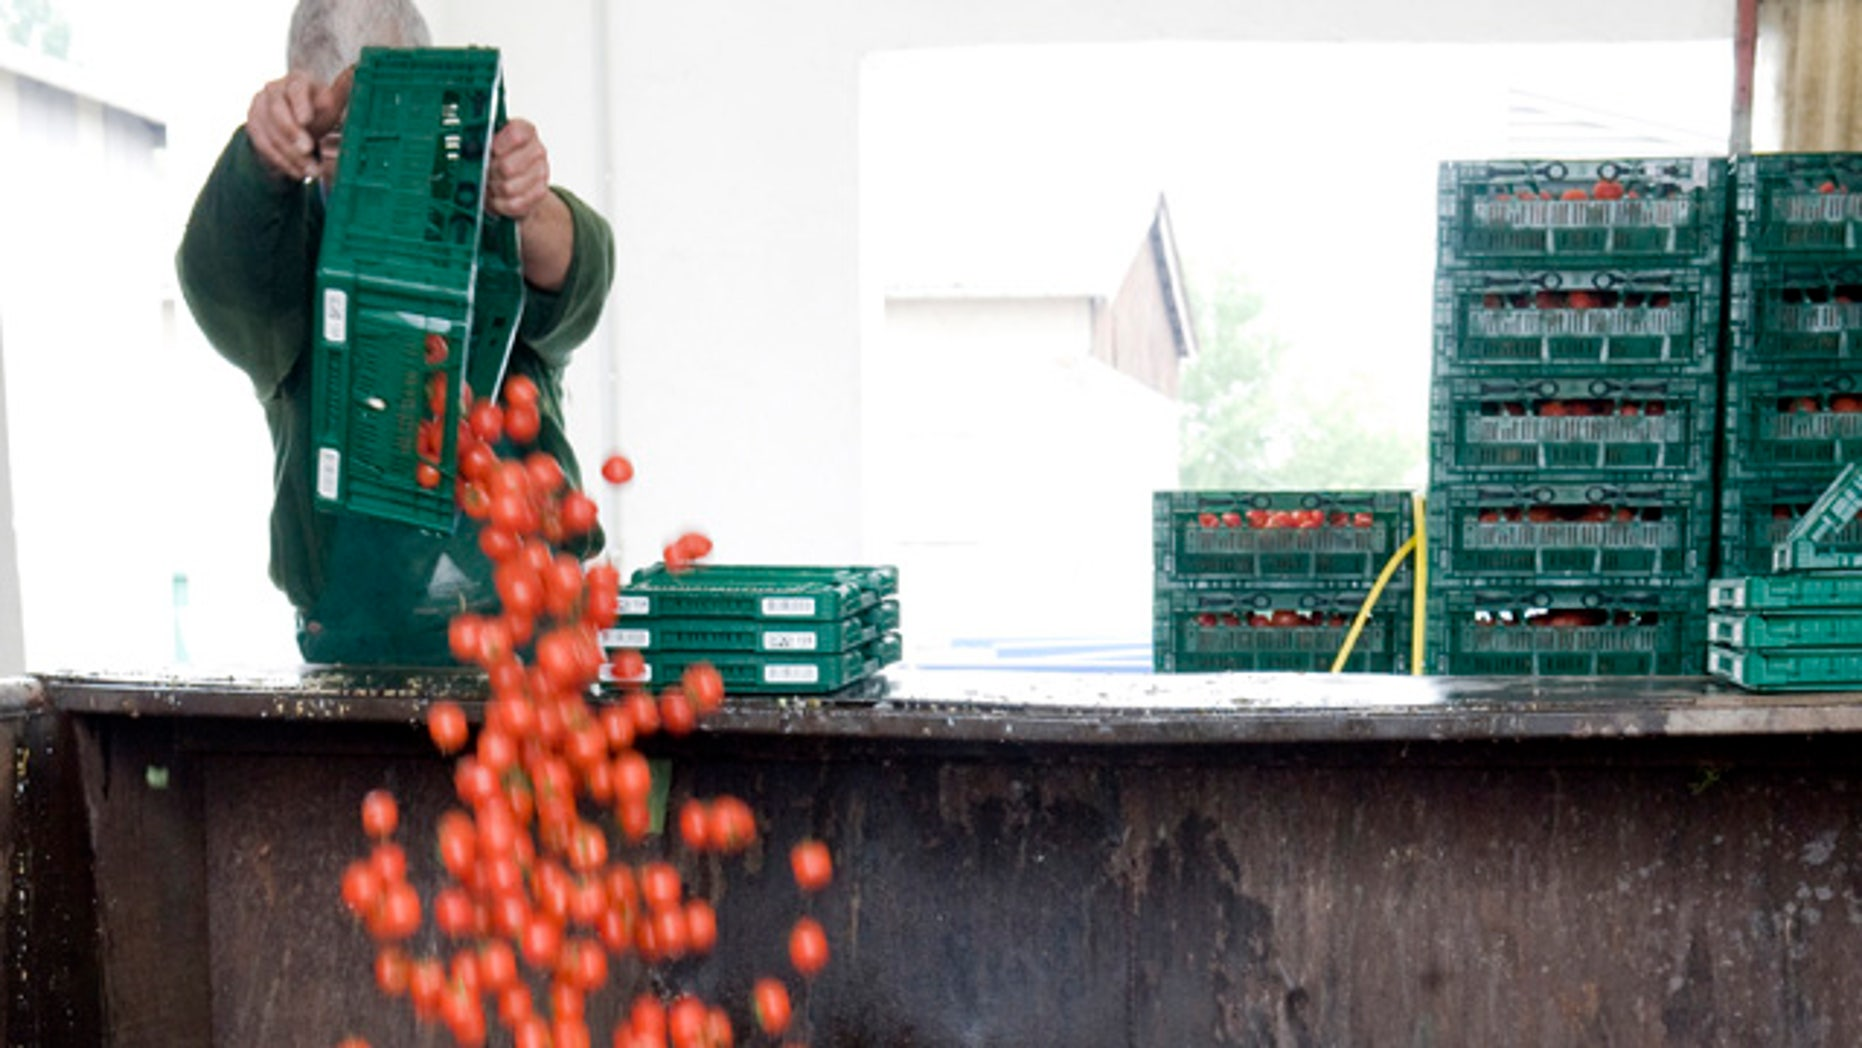 June 7, 2011: An employee of a vegetable company throws away tomatoes in Werder, eastern Germany.